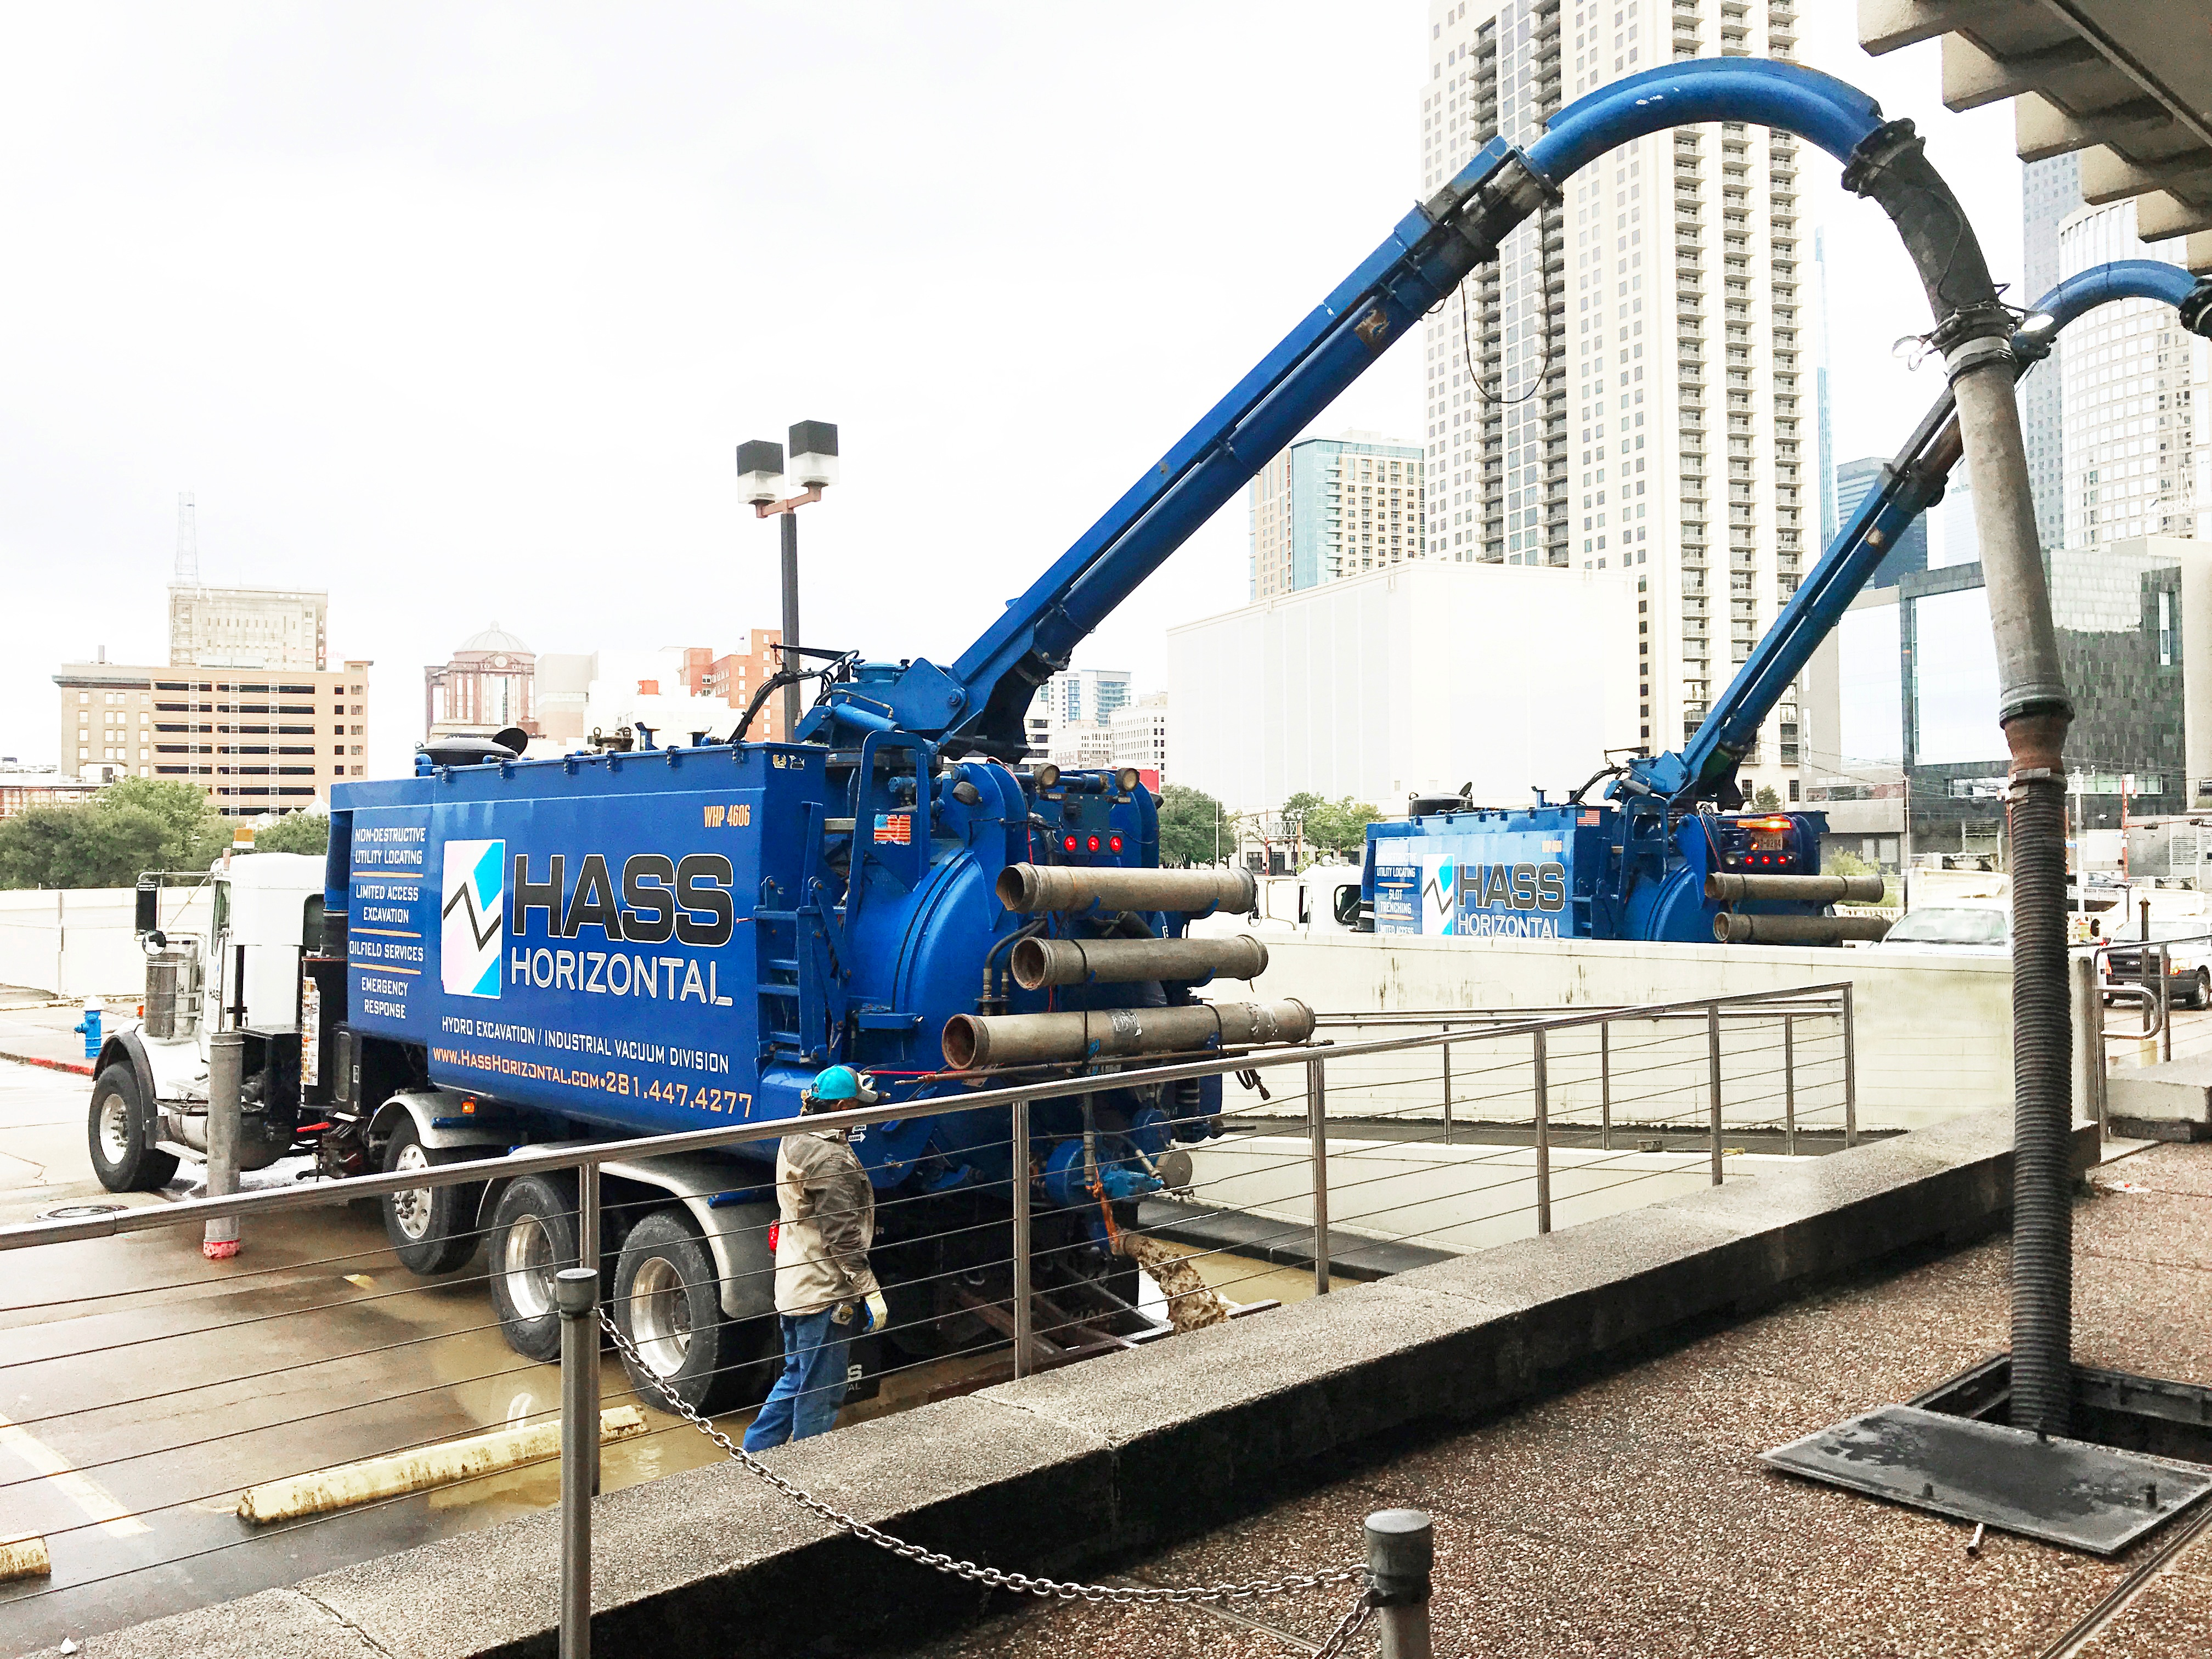 Restoring Electrical Service after Hurricane Harvey Hass Directional Drilling